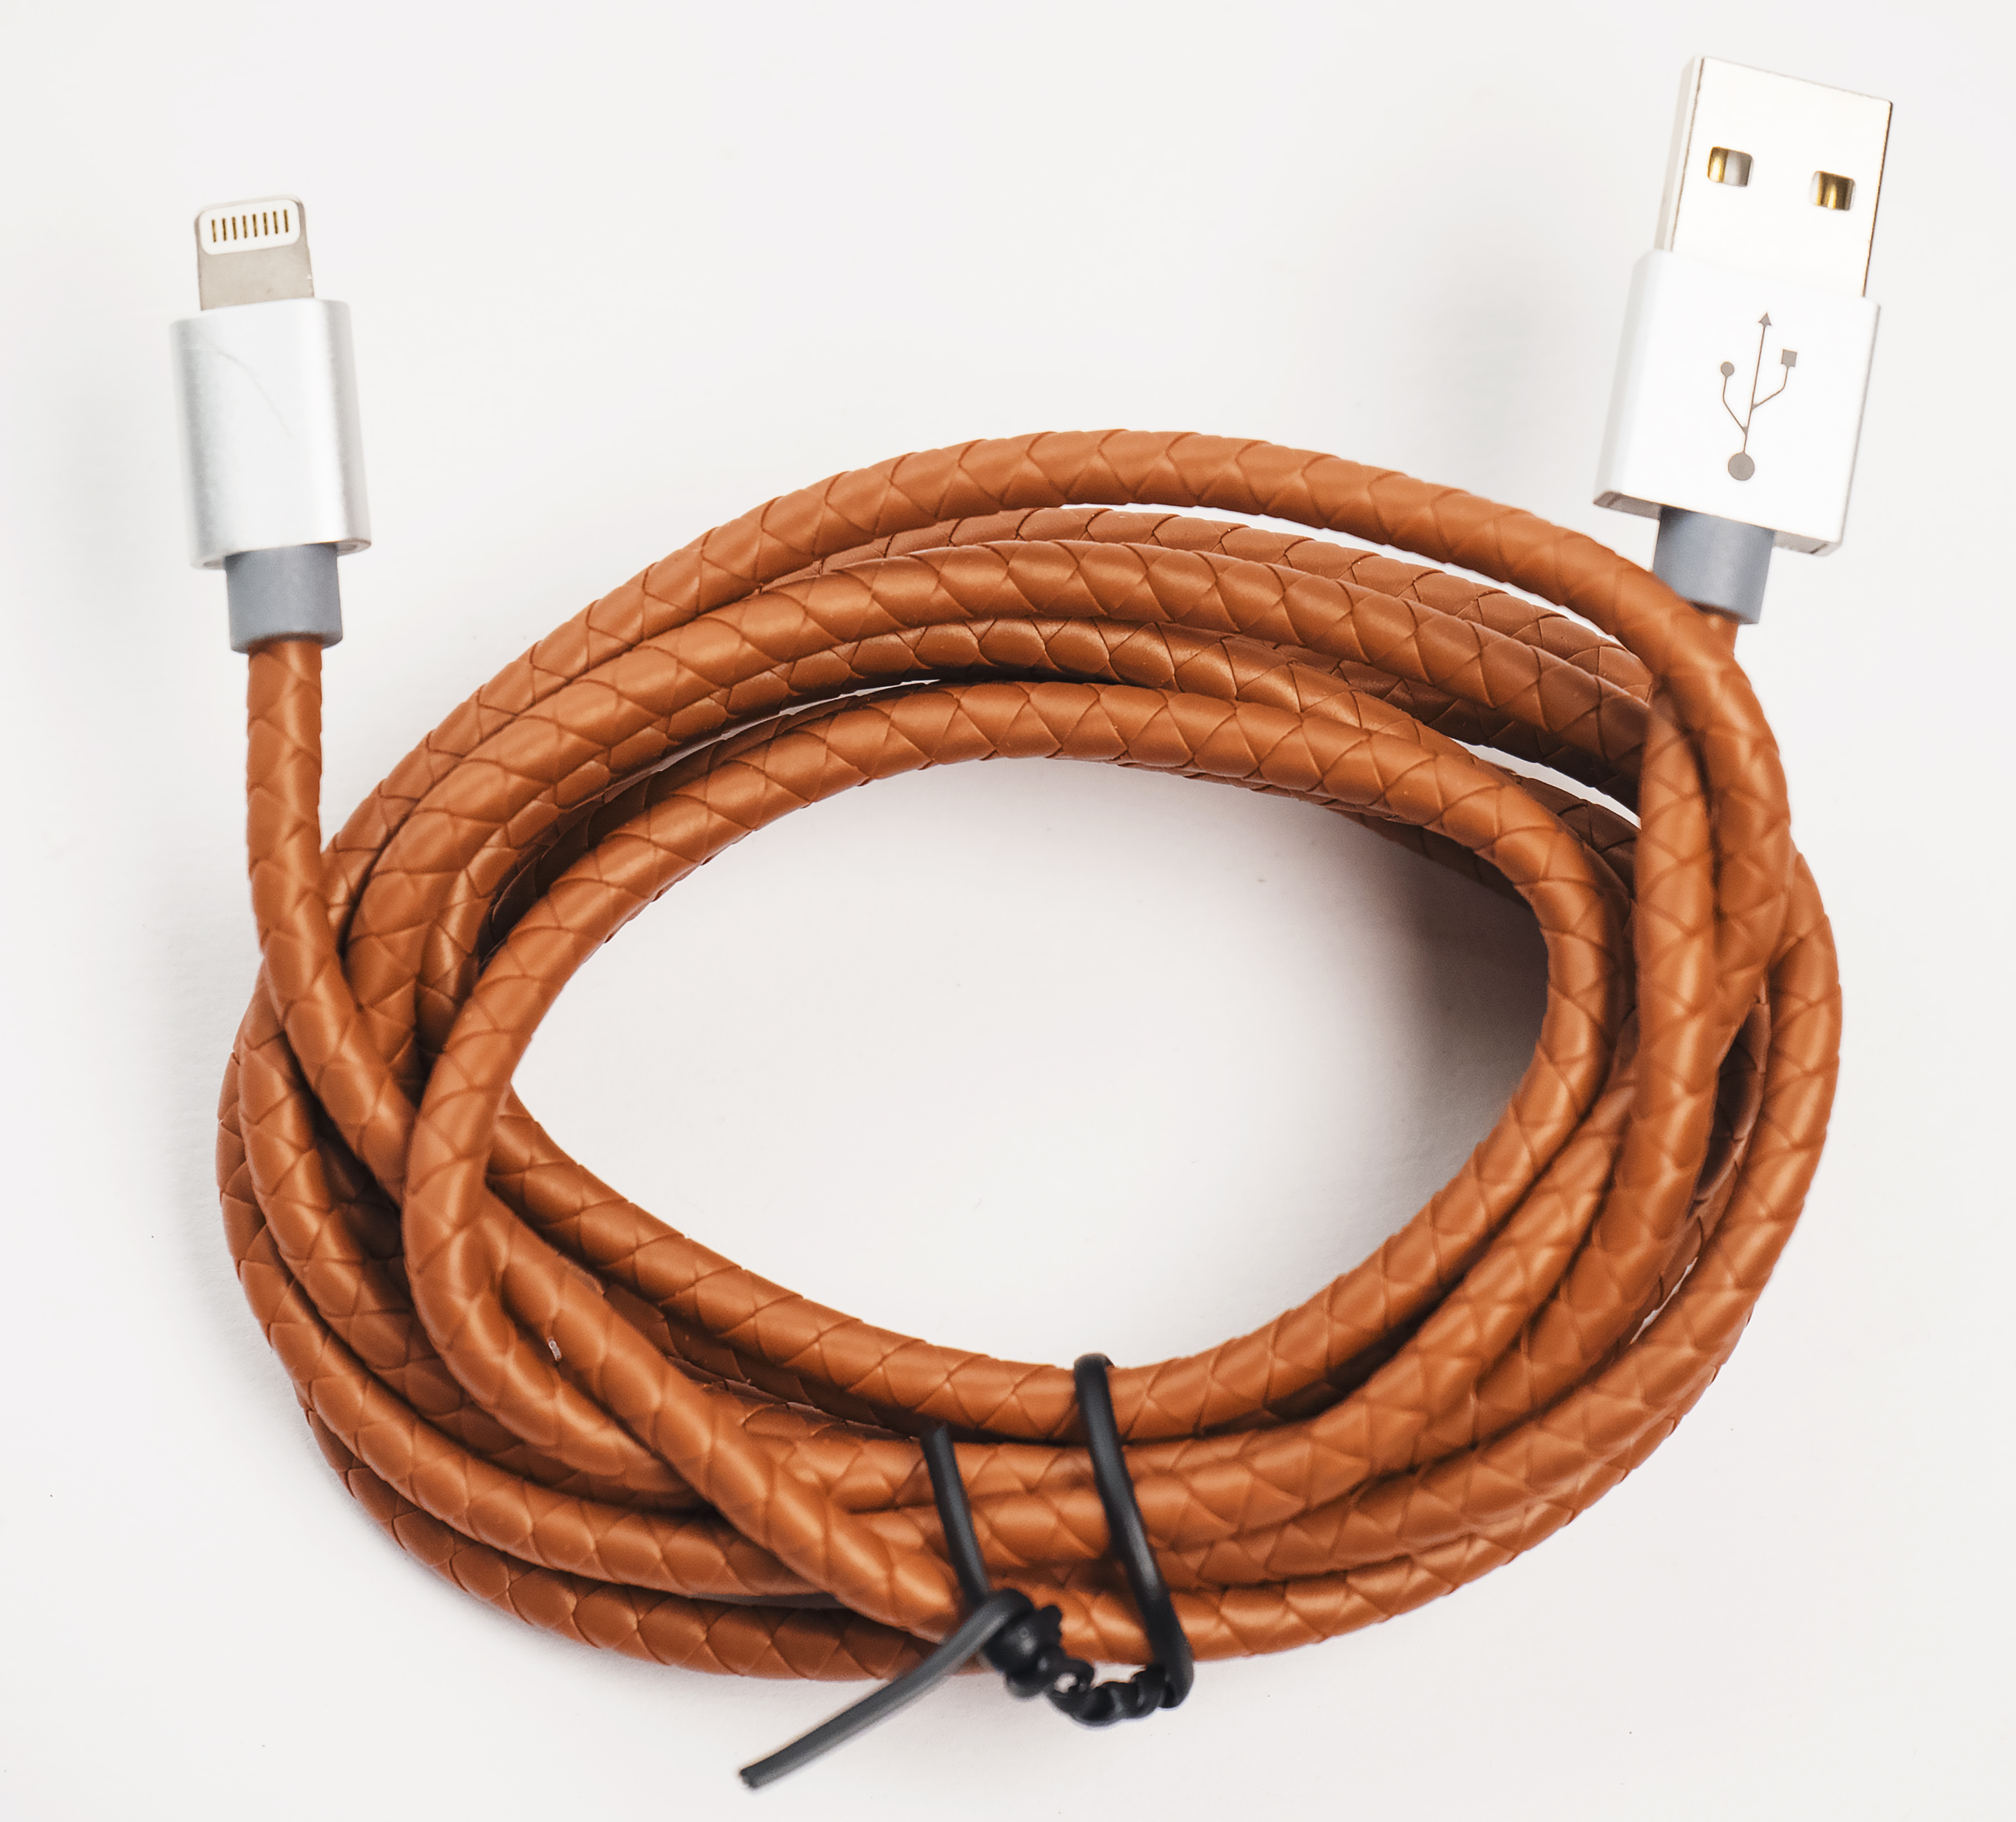 Scoprion Security Products Braided iPhone Charging Cable, Brown Leather, 6 Feet